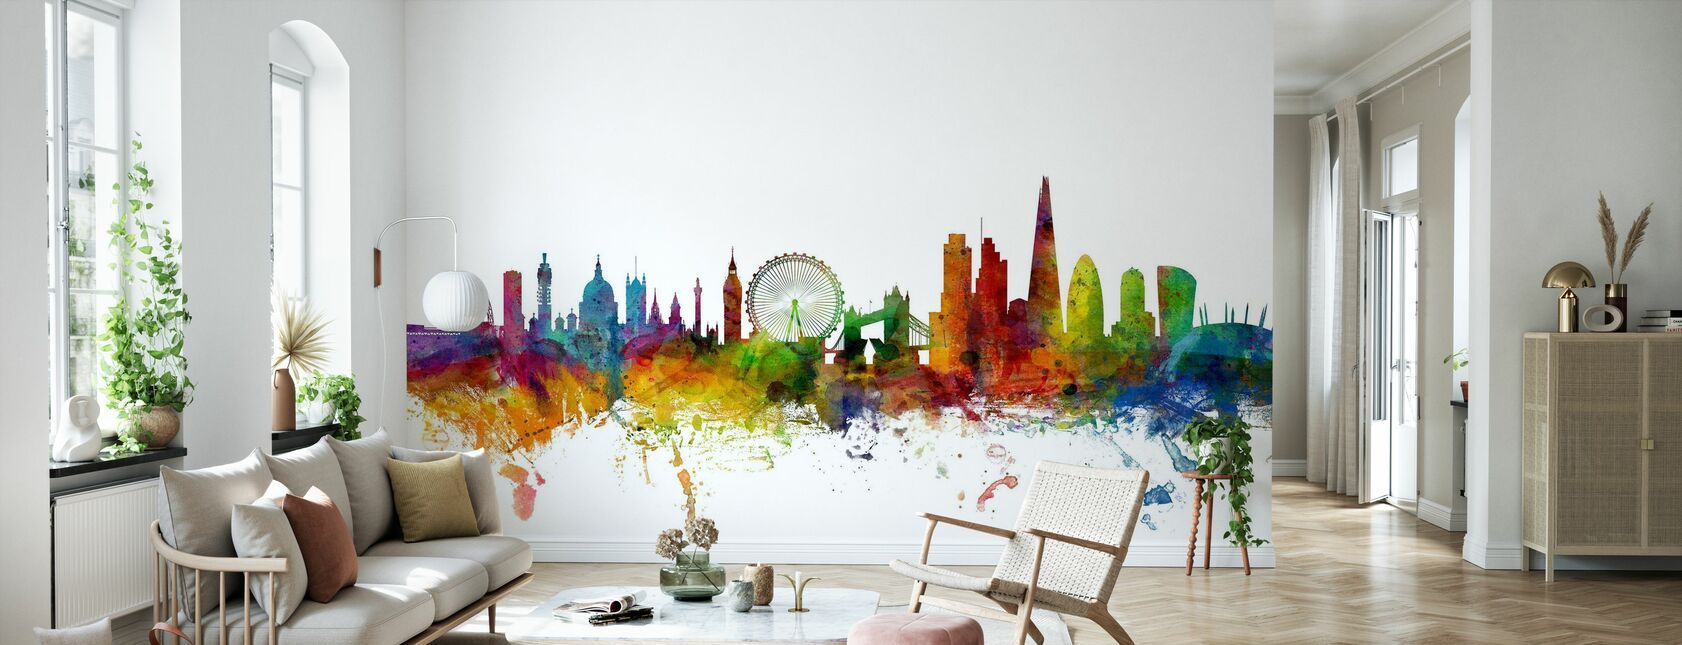 London Skyline 2 - Wallpaper - Living Room